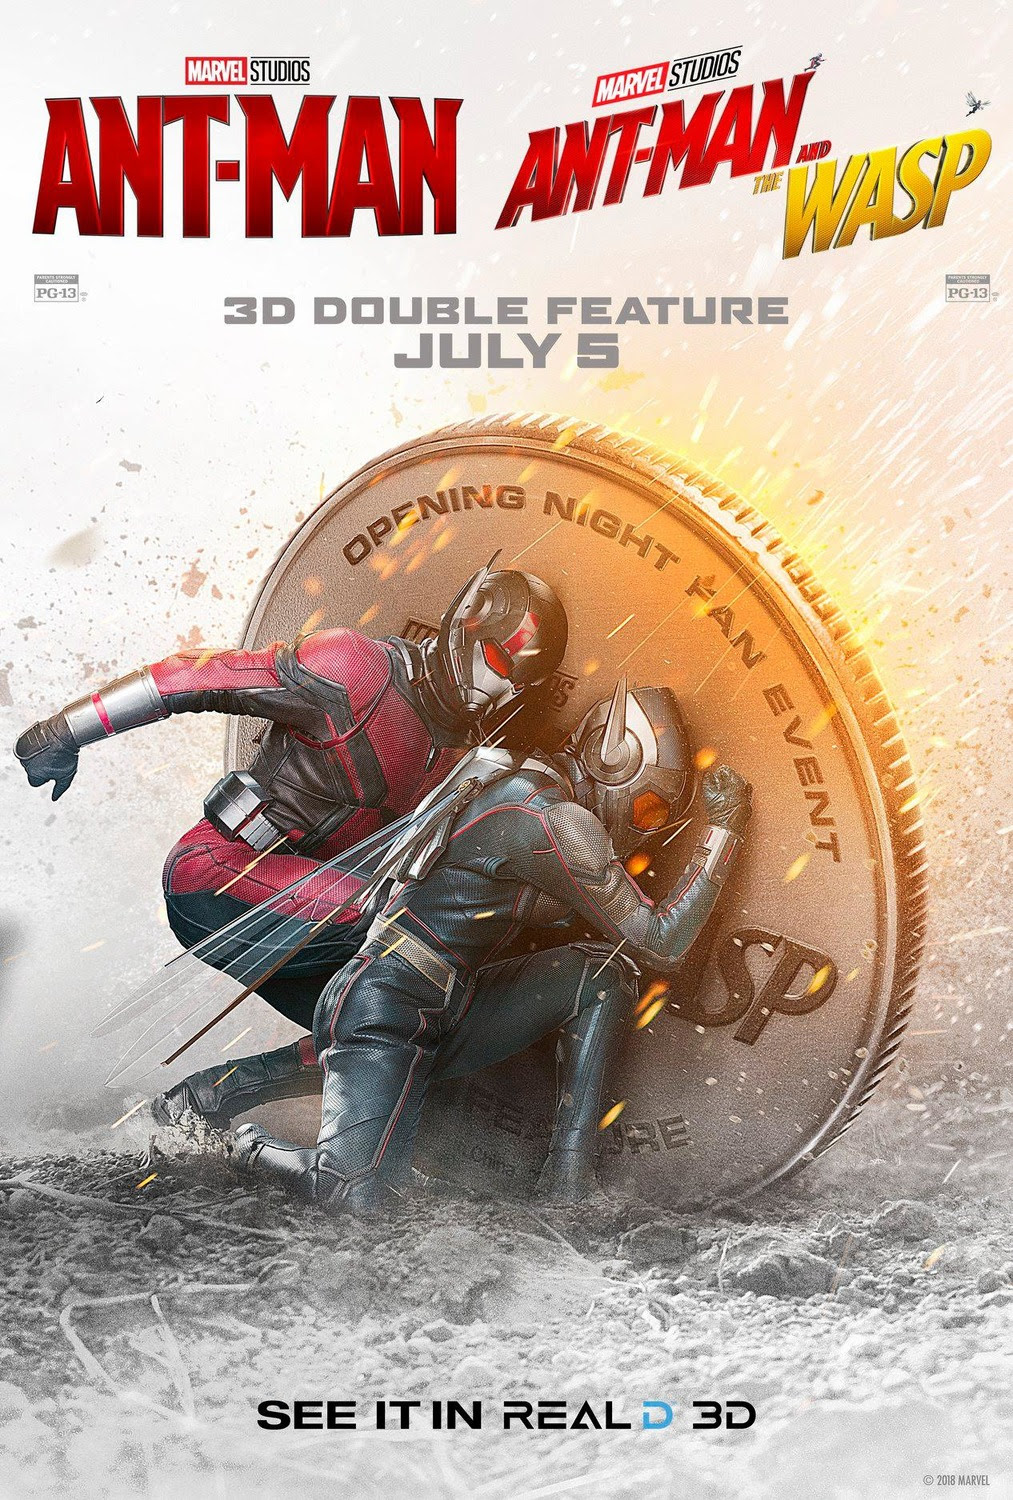 Extra Large Movie Poster Image for Ant-Man and the Wasp (#18 of 18)